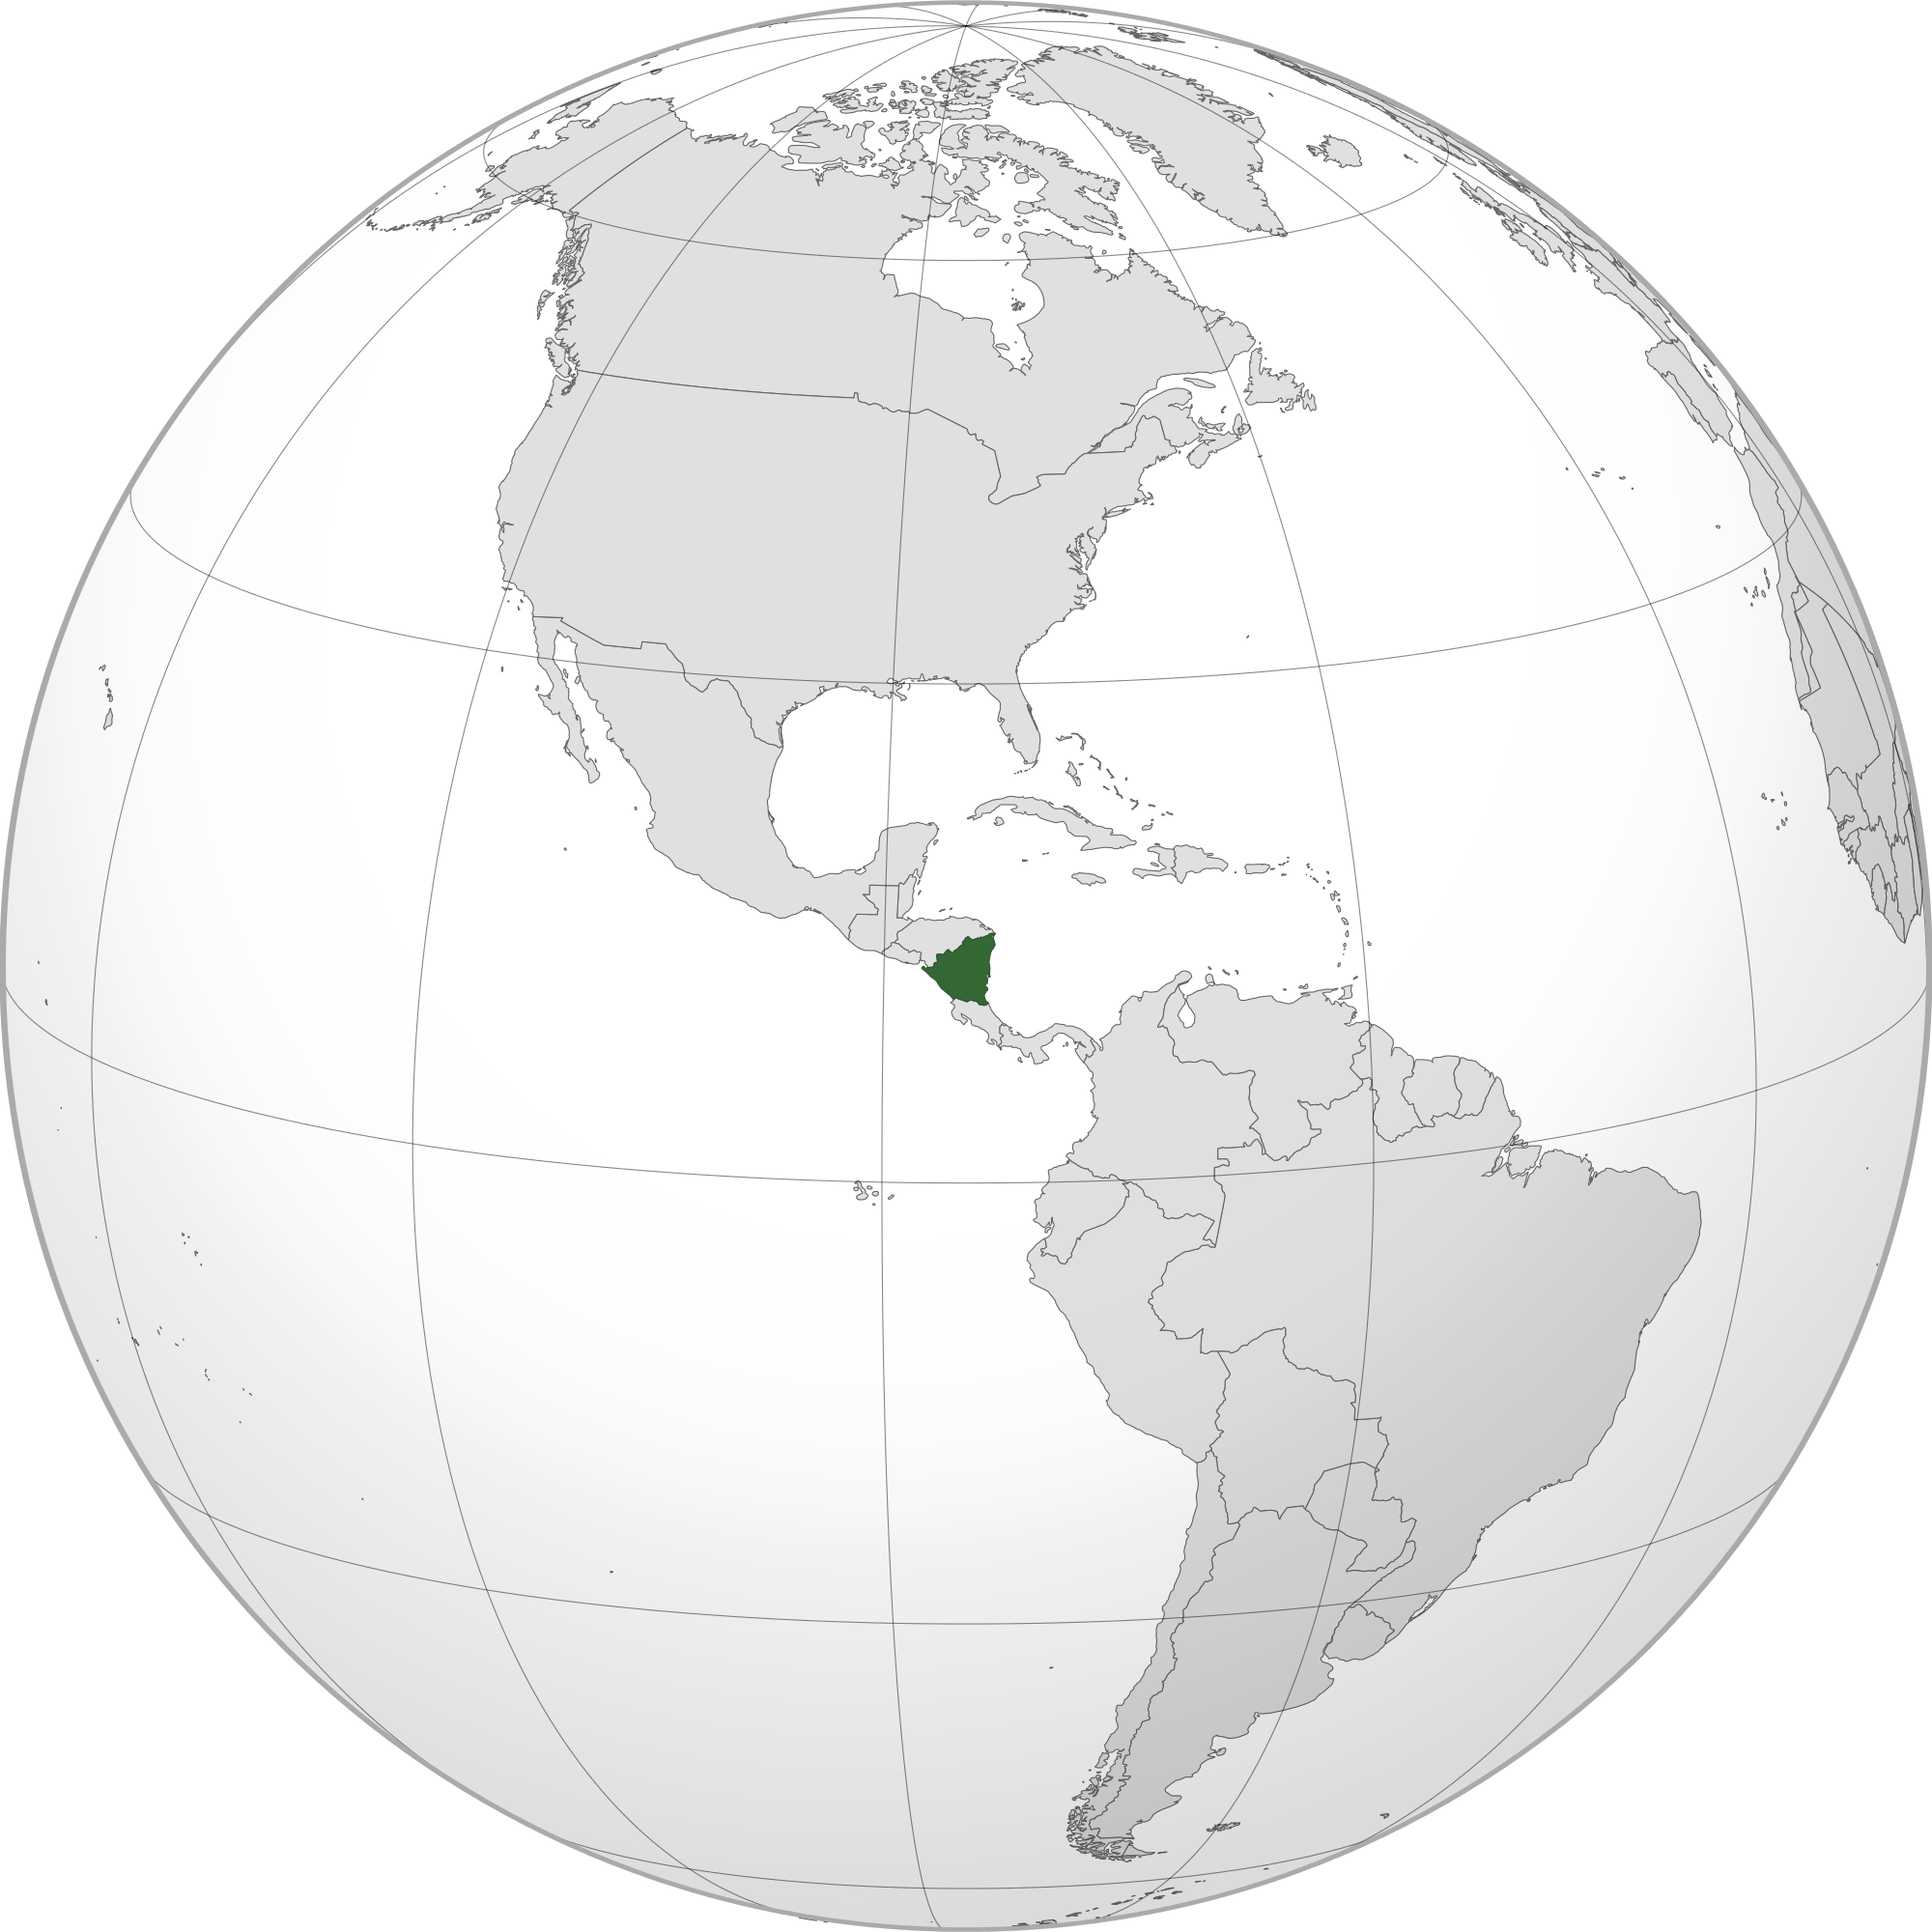 Location of the Nicaragua in the World Map